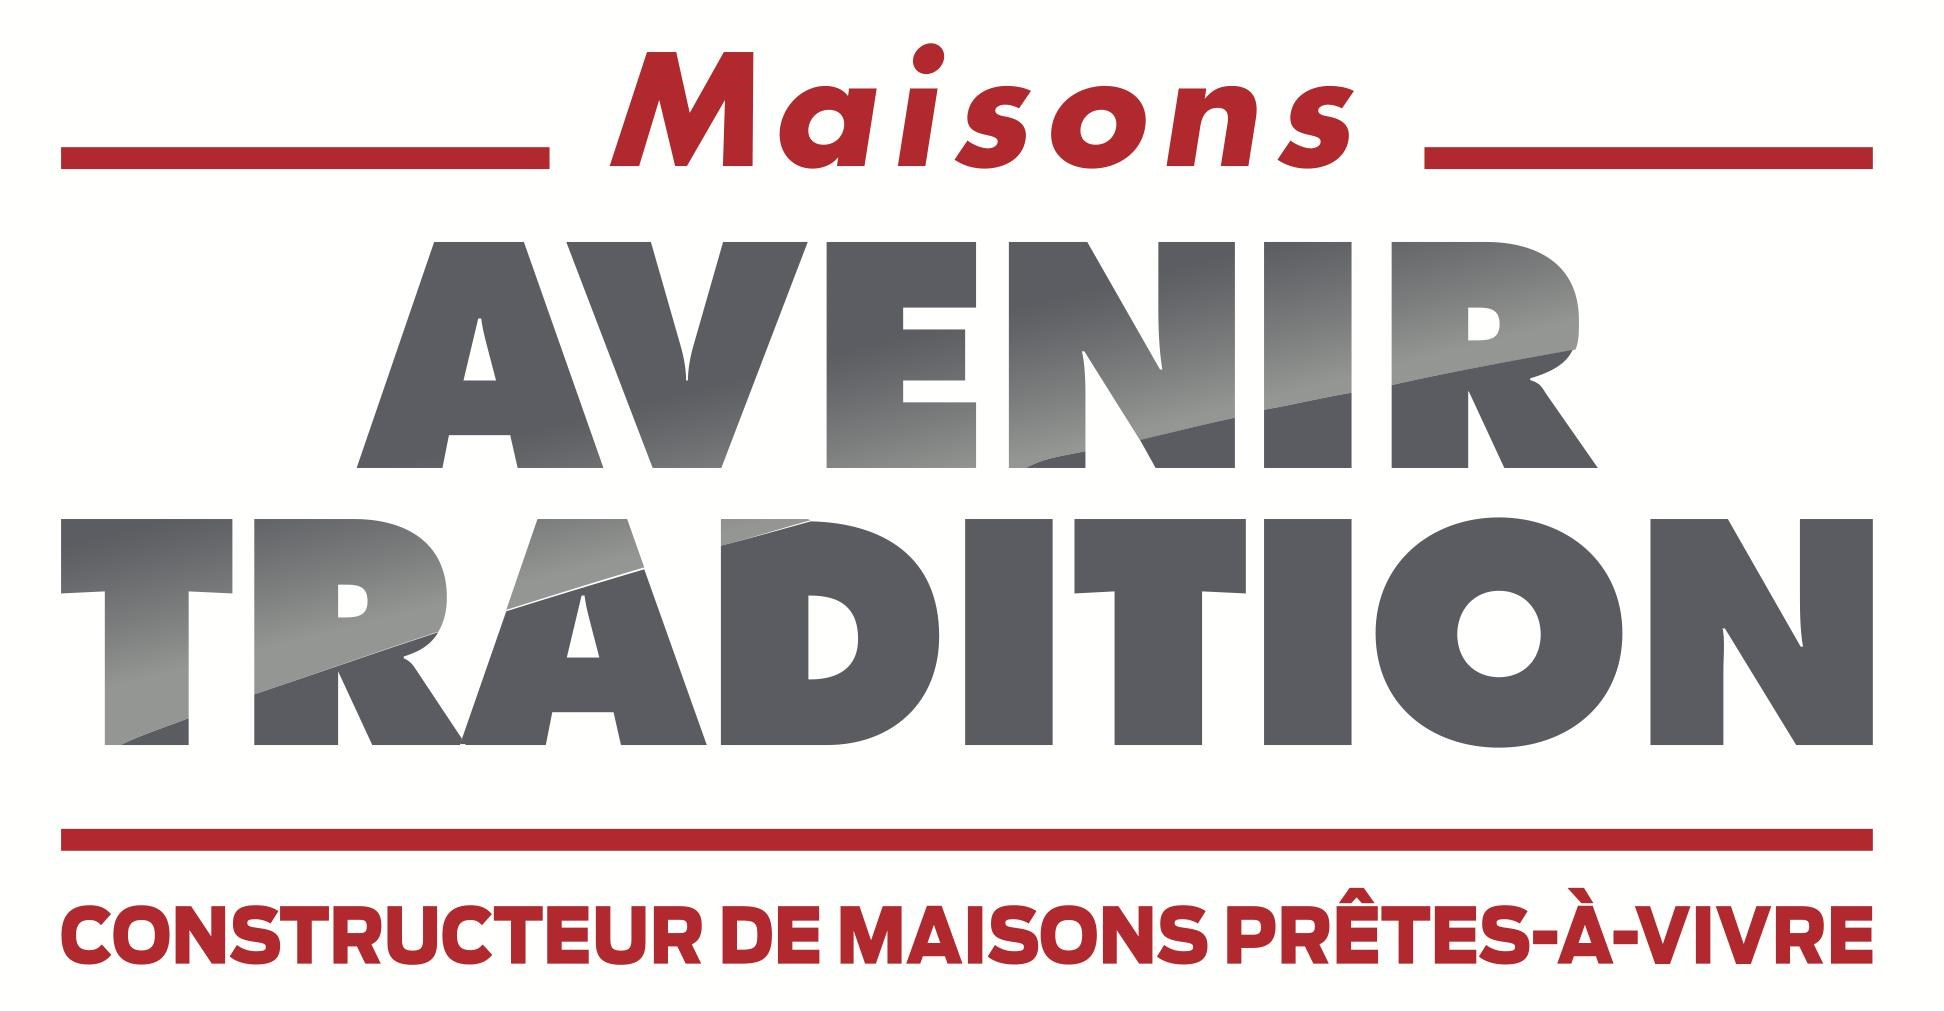 MAISONS AVENIR TRADITION CABRIES